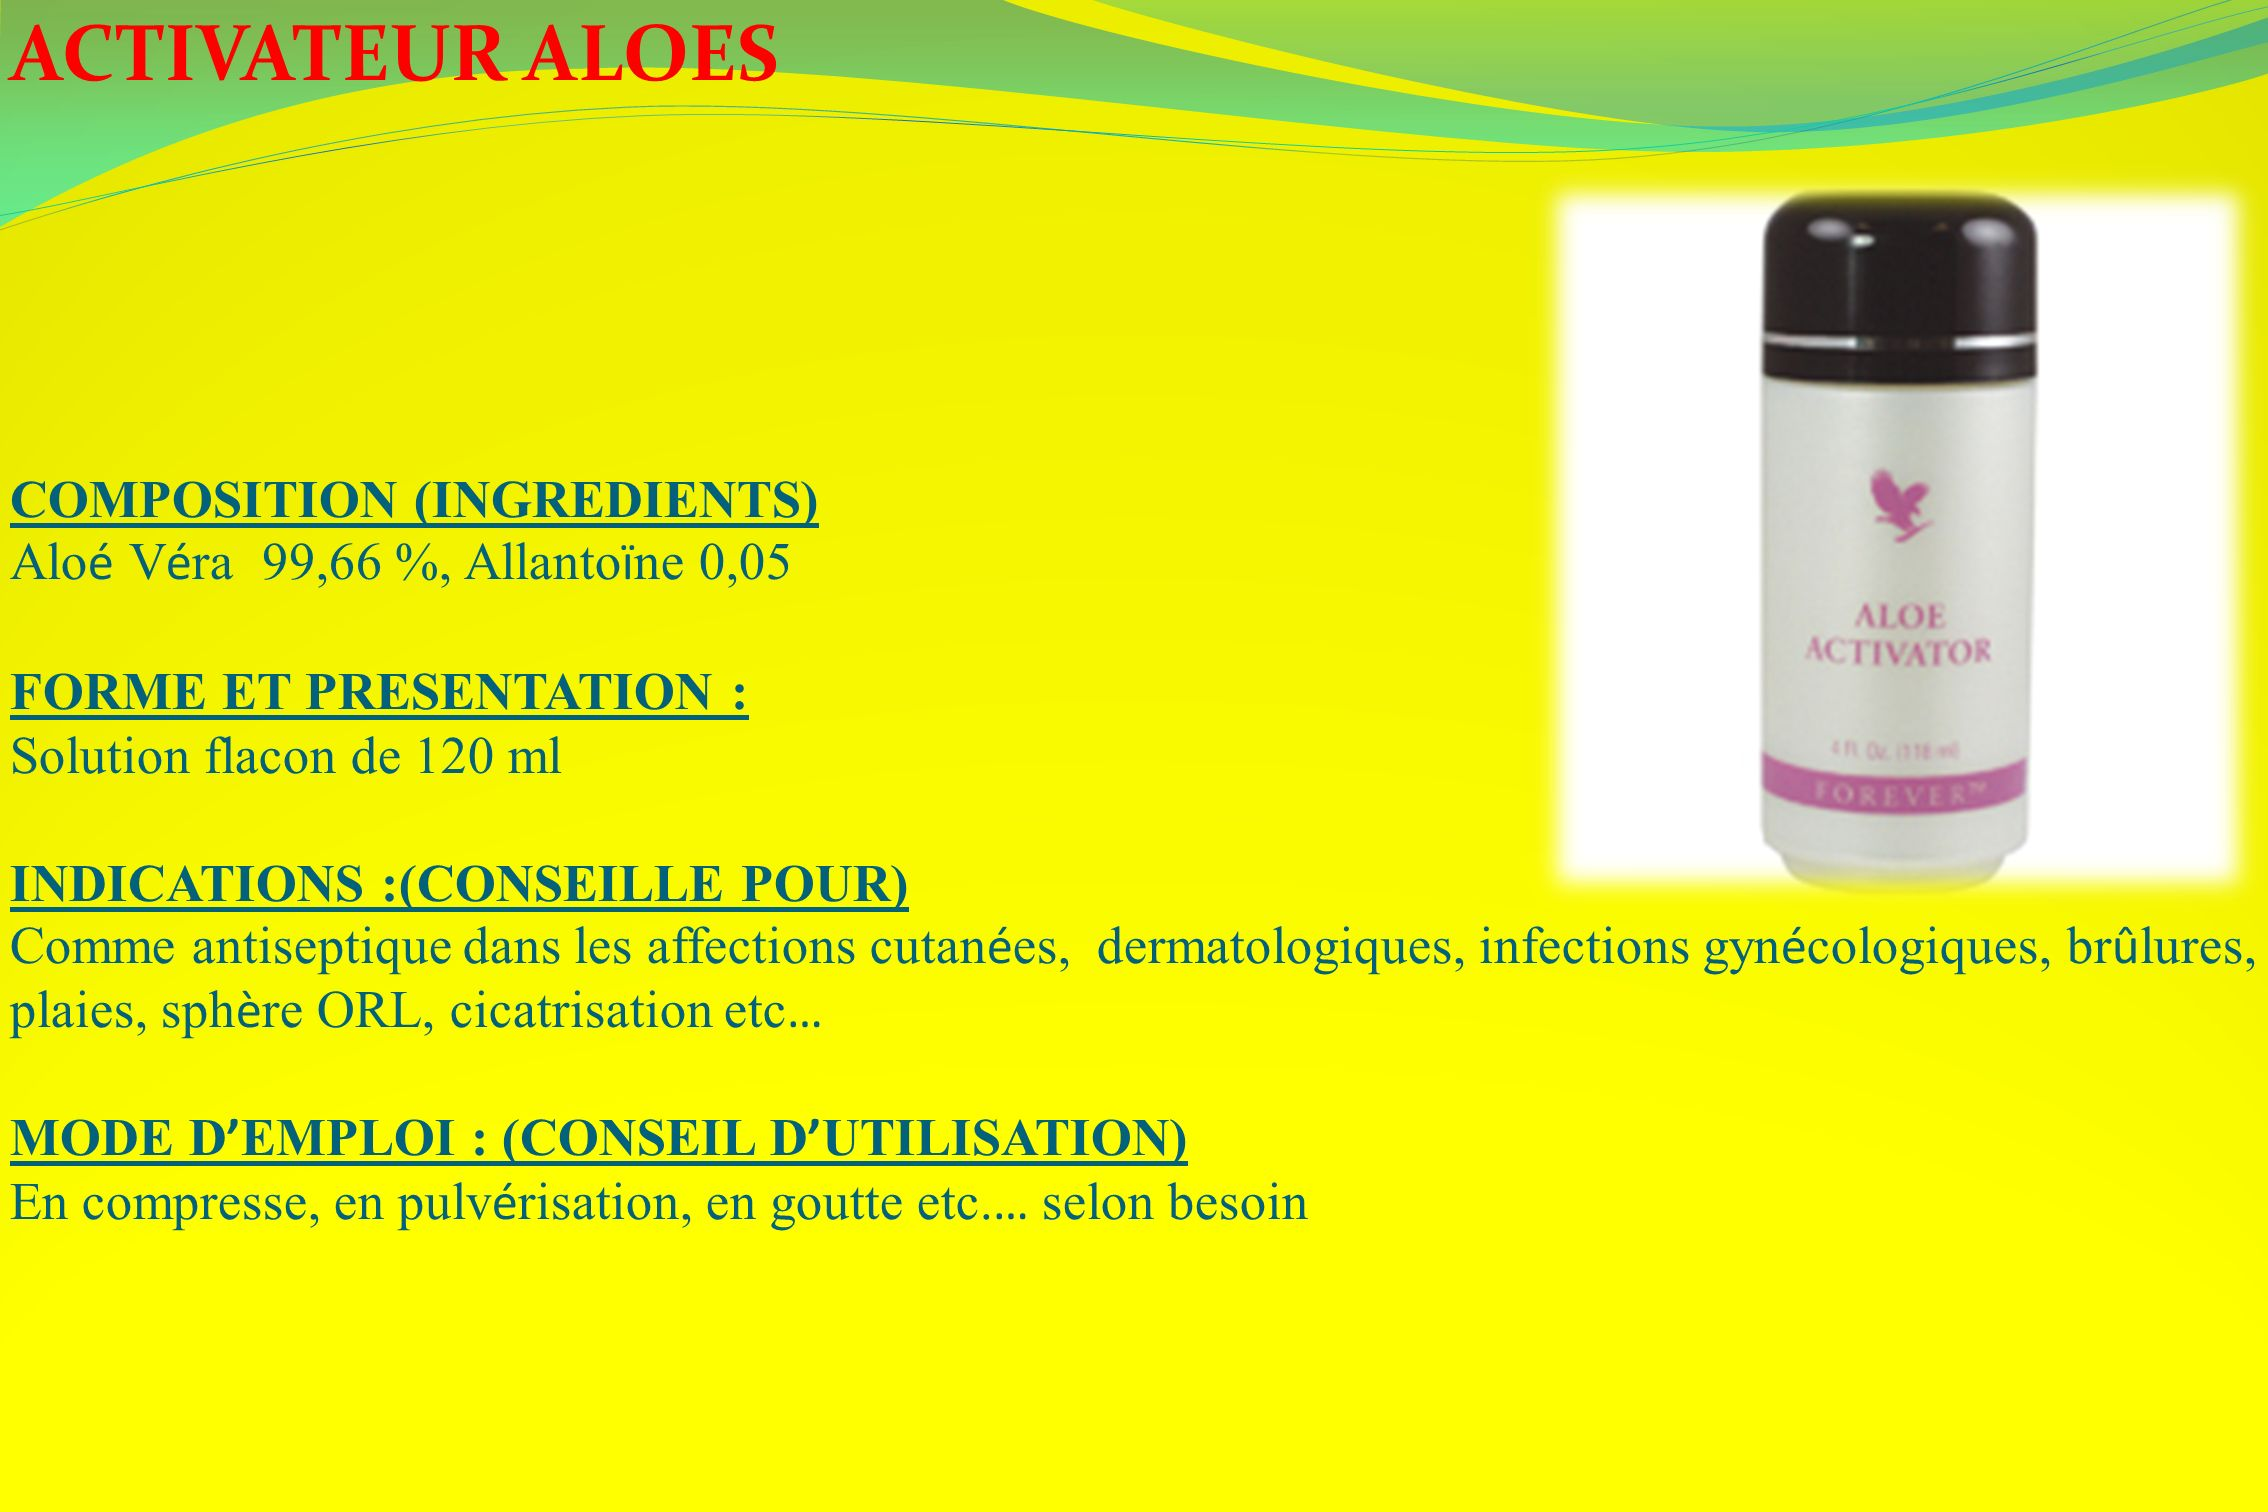 ACTIVATEUR ALOES COMPOSITION (INGREDIENTS)